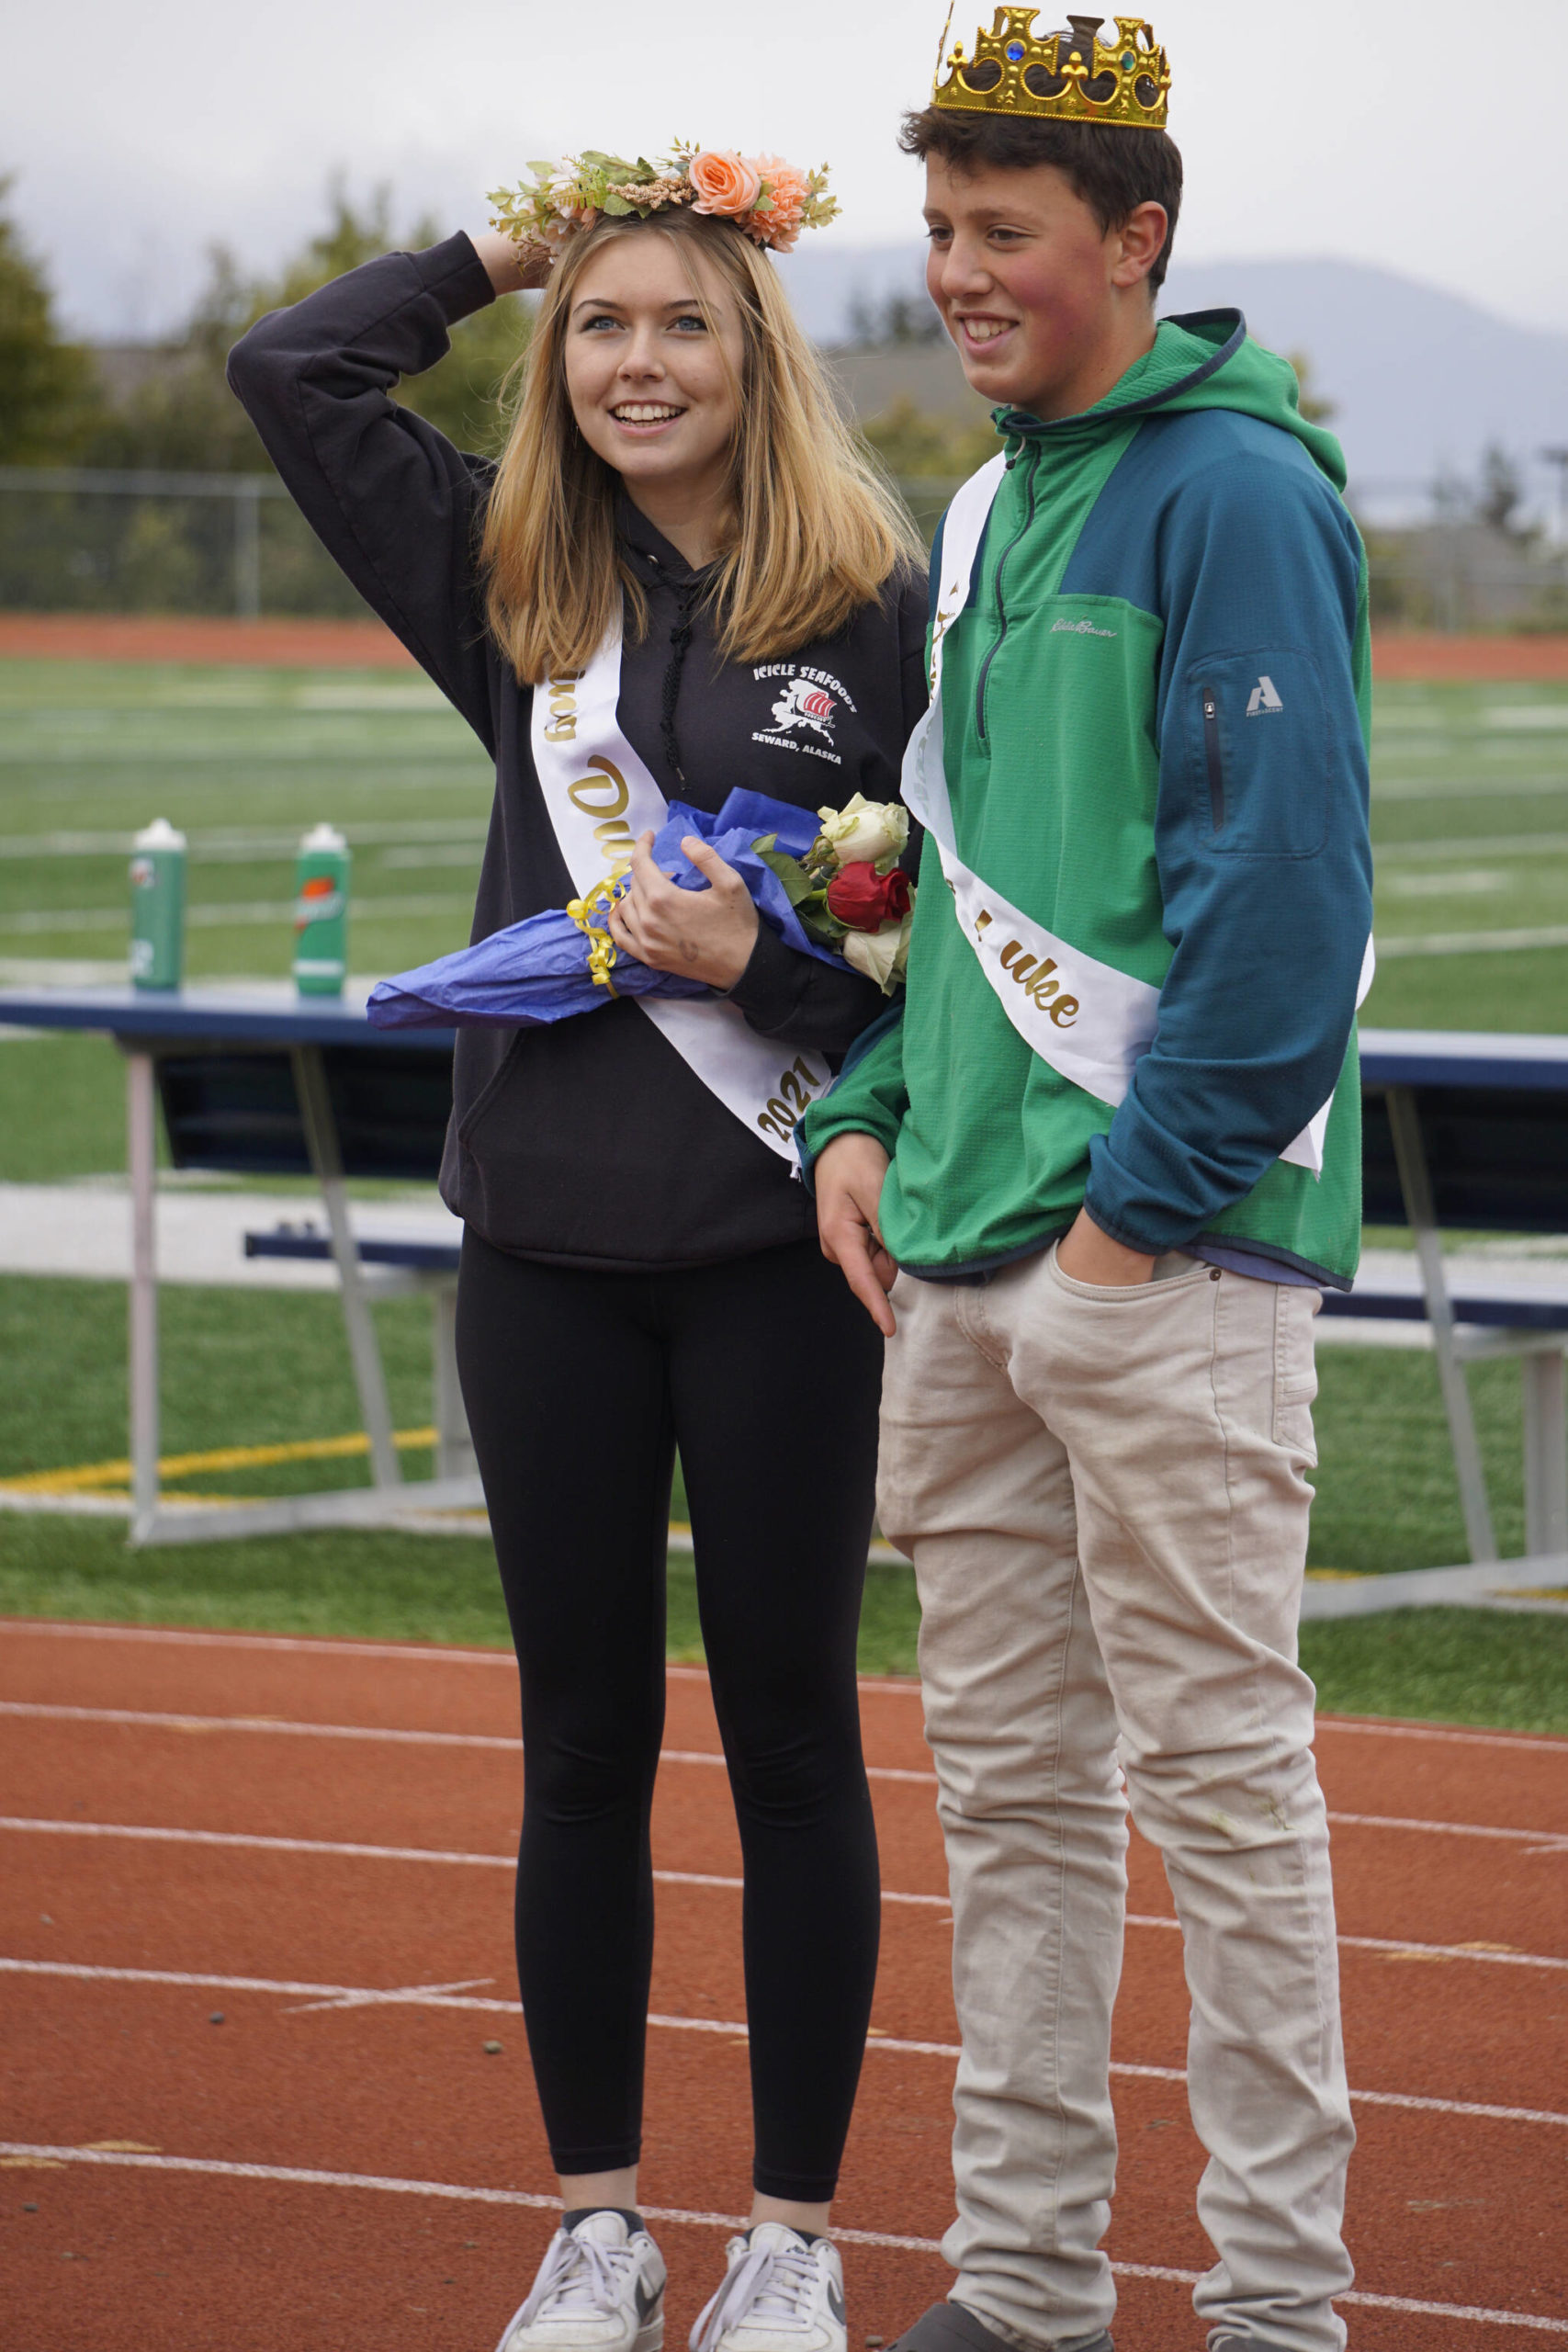 Sophomore class Duchess Minadora Reutov adjusts her crown as Duke Camden Wise watches at the Homer vs. Nikiski junior varsity football game on Saturday, Oct. 2, 2021, at Homer High School. (Photo by Michael Armstrong/Homer News)